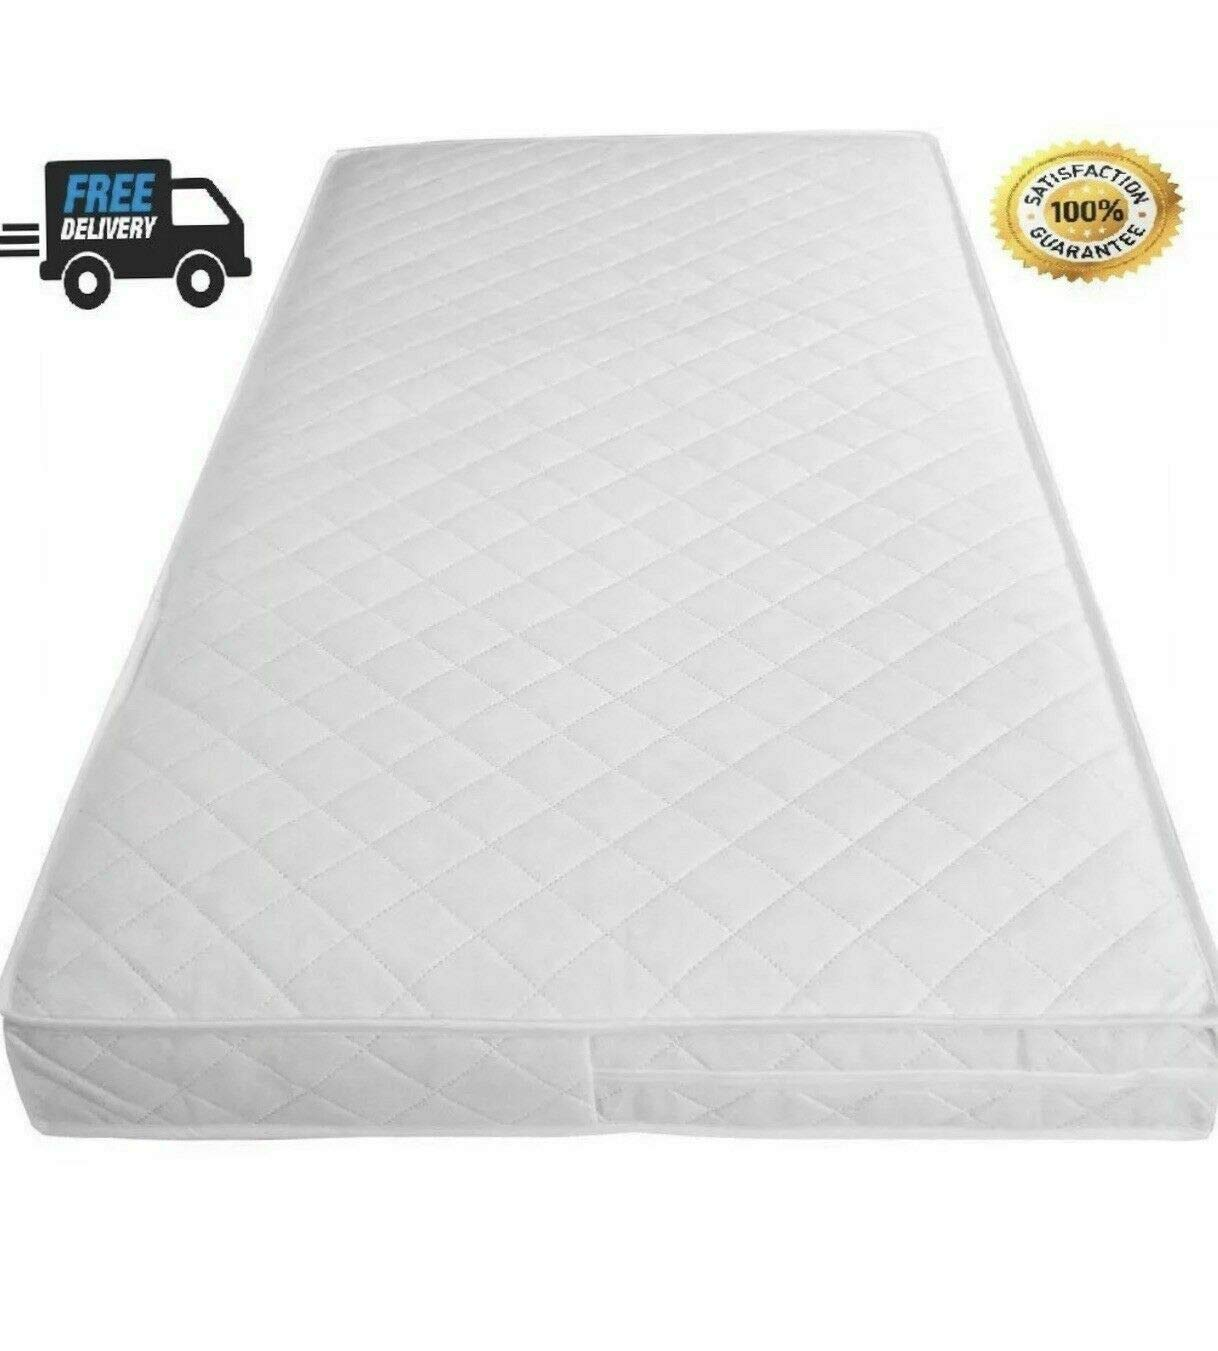 England Travel Cot 95 X 65 X 7.5 Soft Quilted Waterproof Cover Made in Lancashire 140 X 70 160 X 70 Cot Mattress 160 X 80 8 Sizes